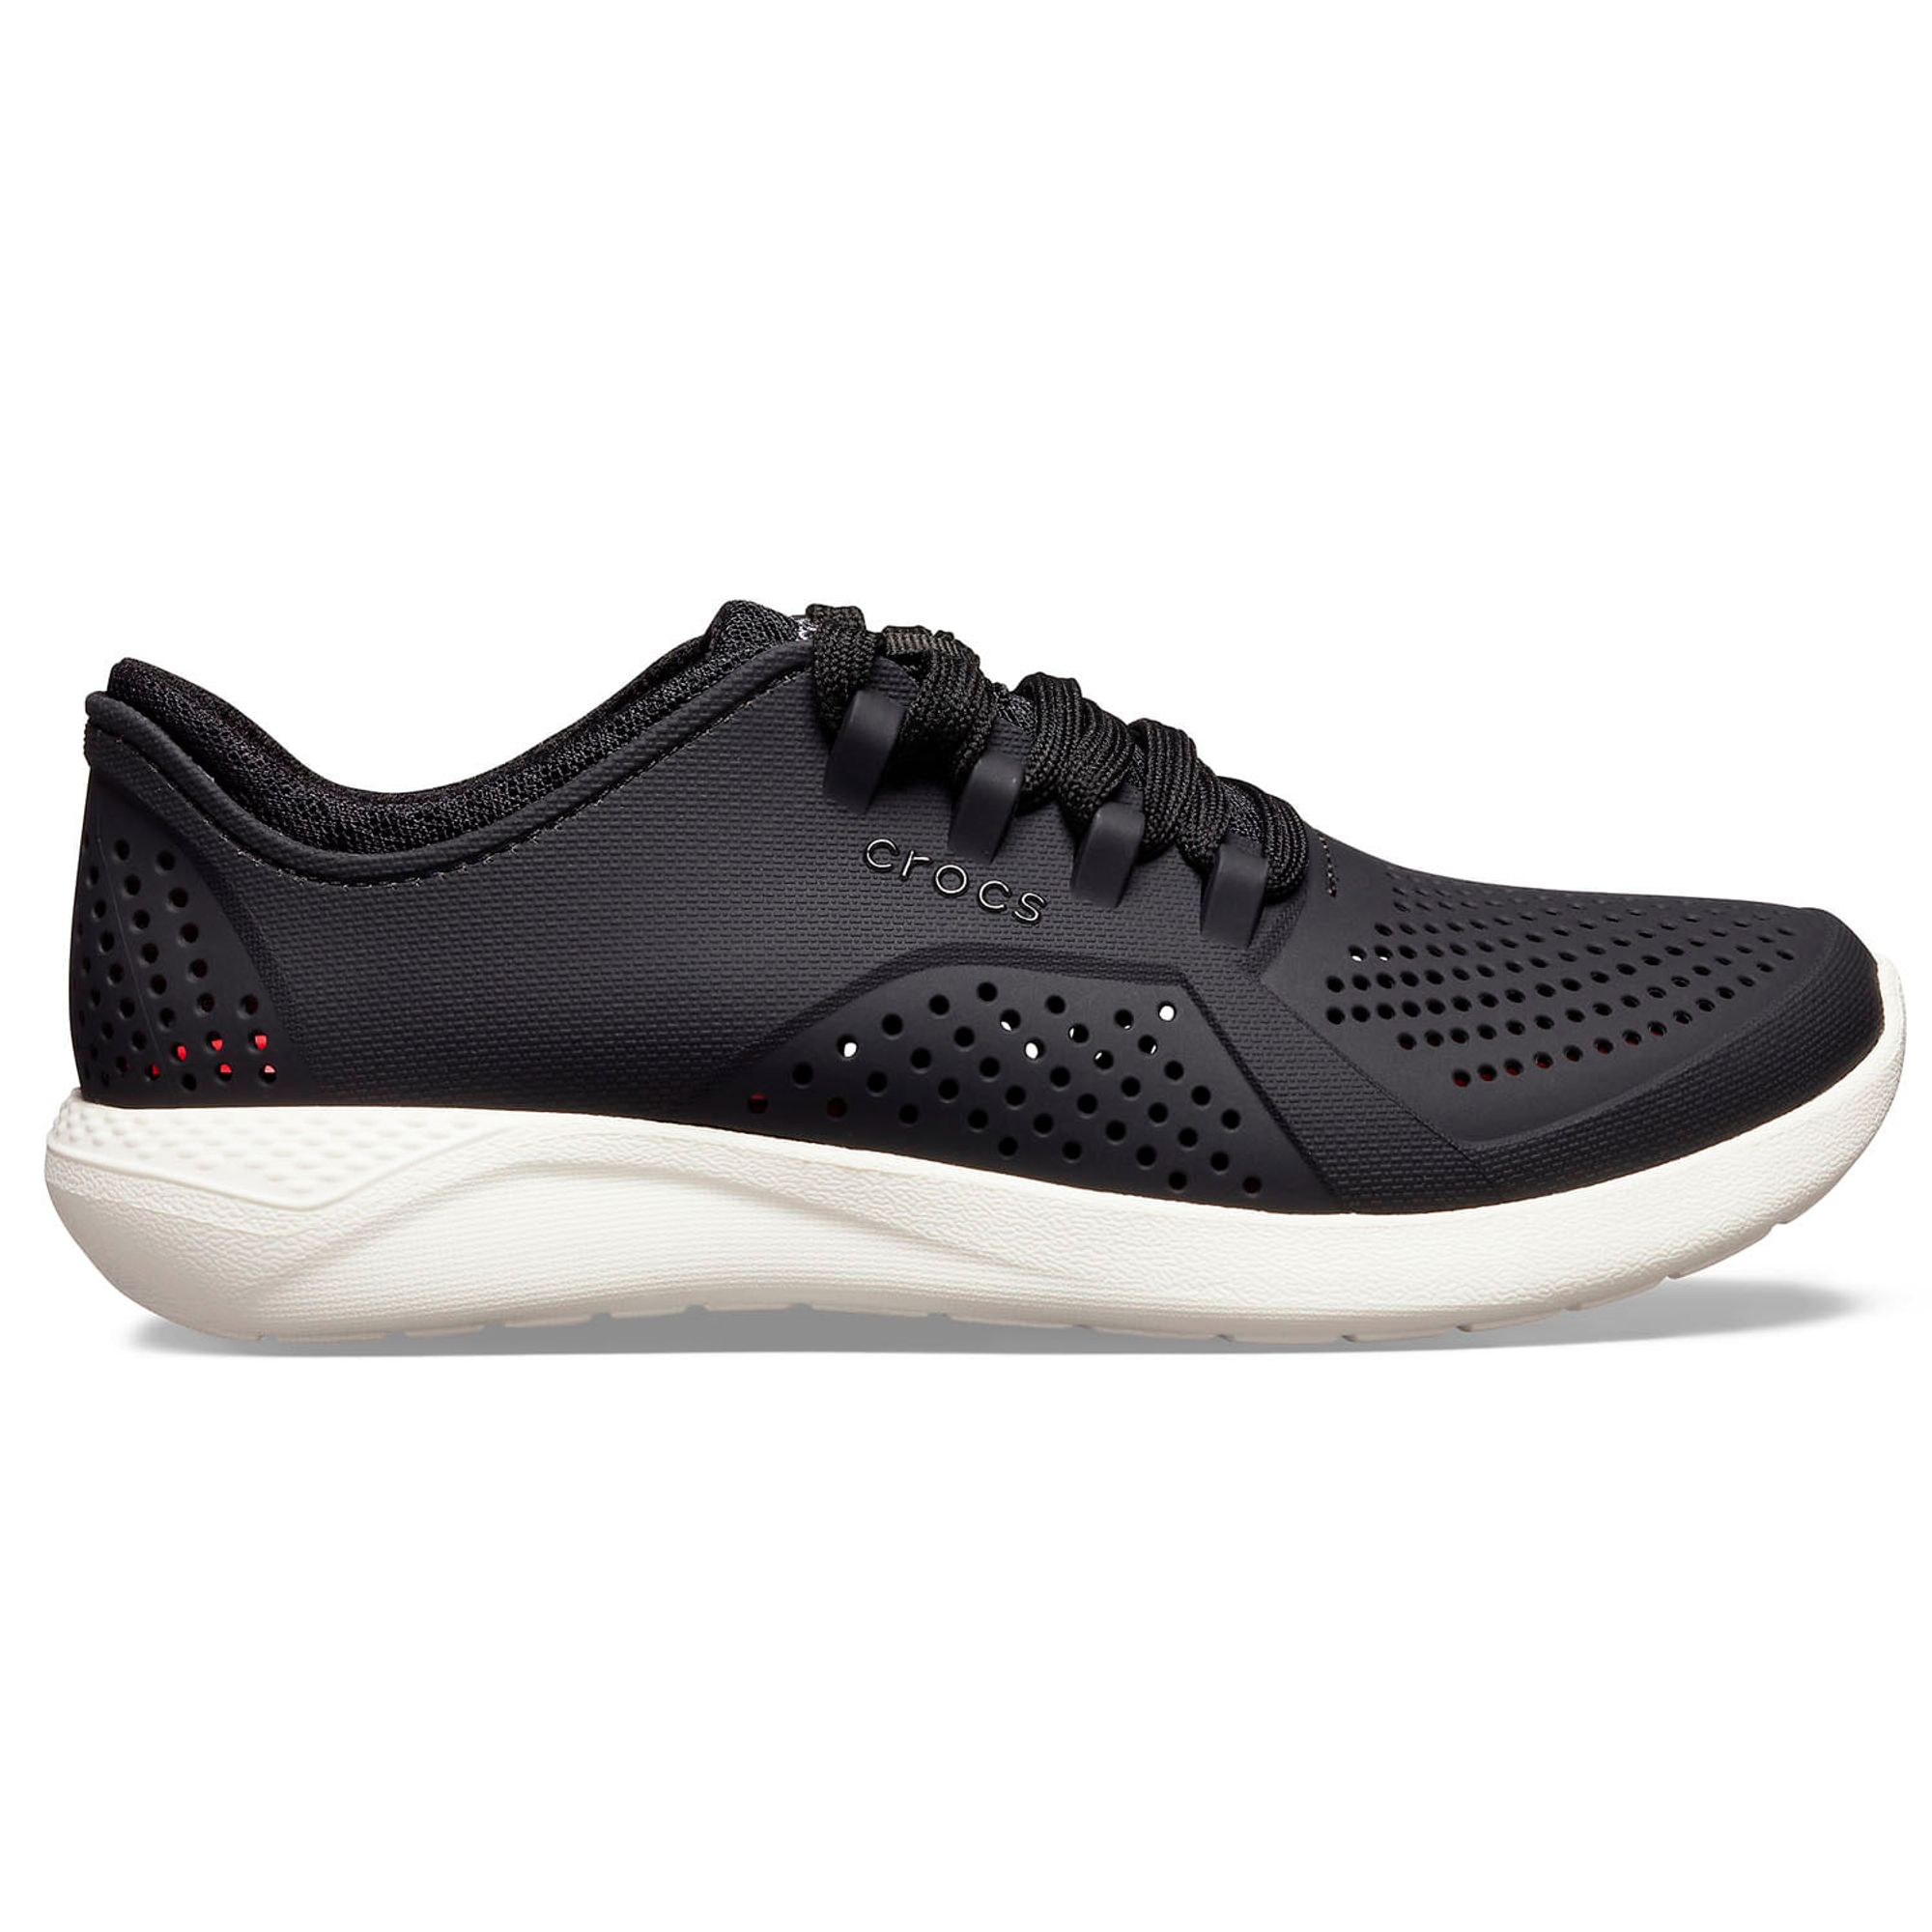 Womens-LiteRide-Pacer-Color-Negro-Talla-W10